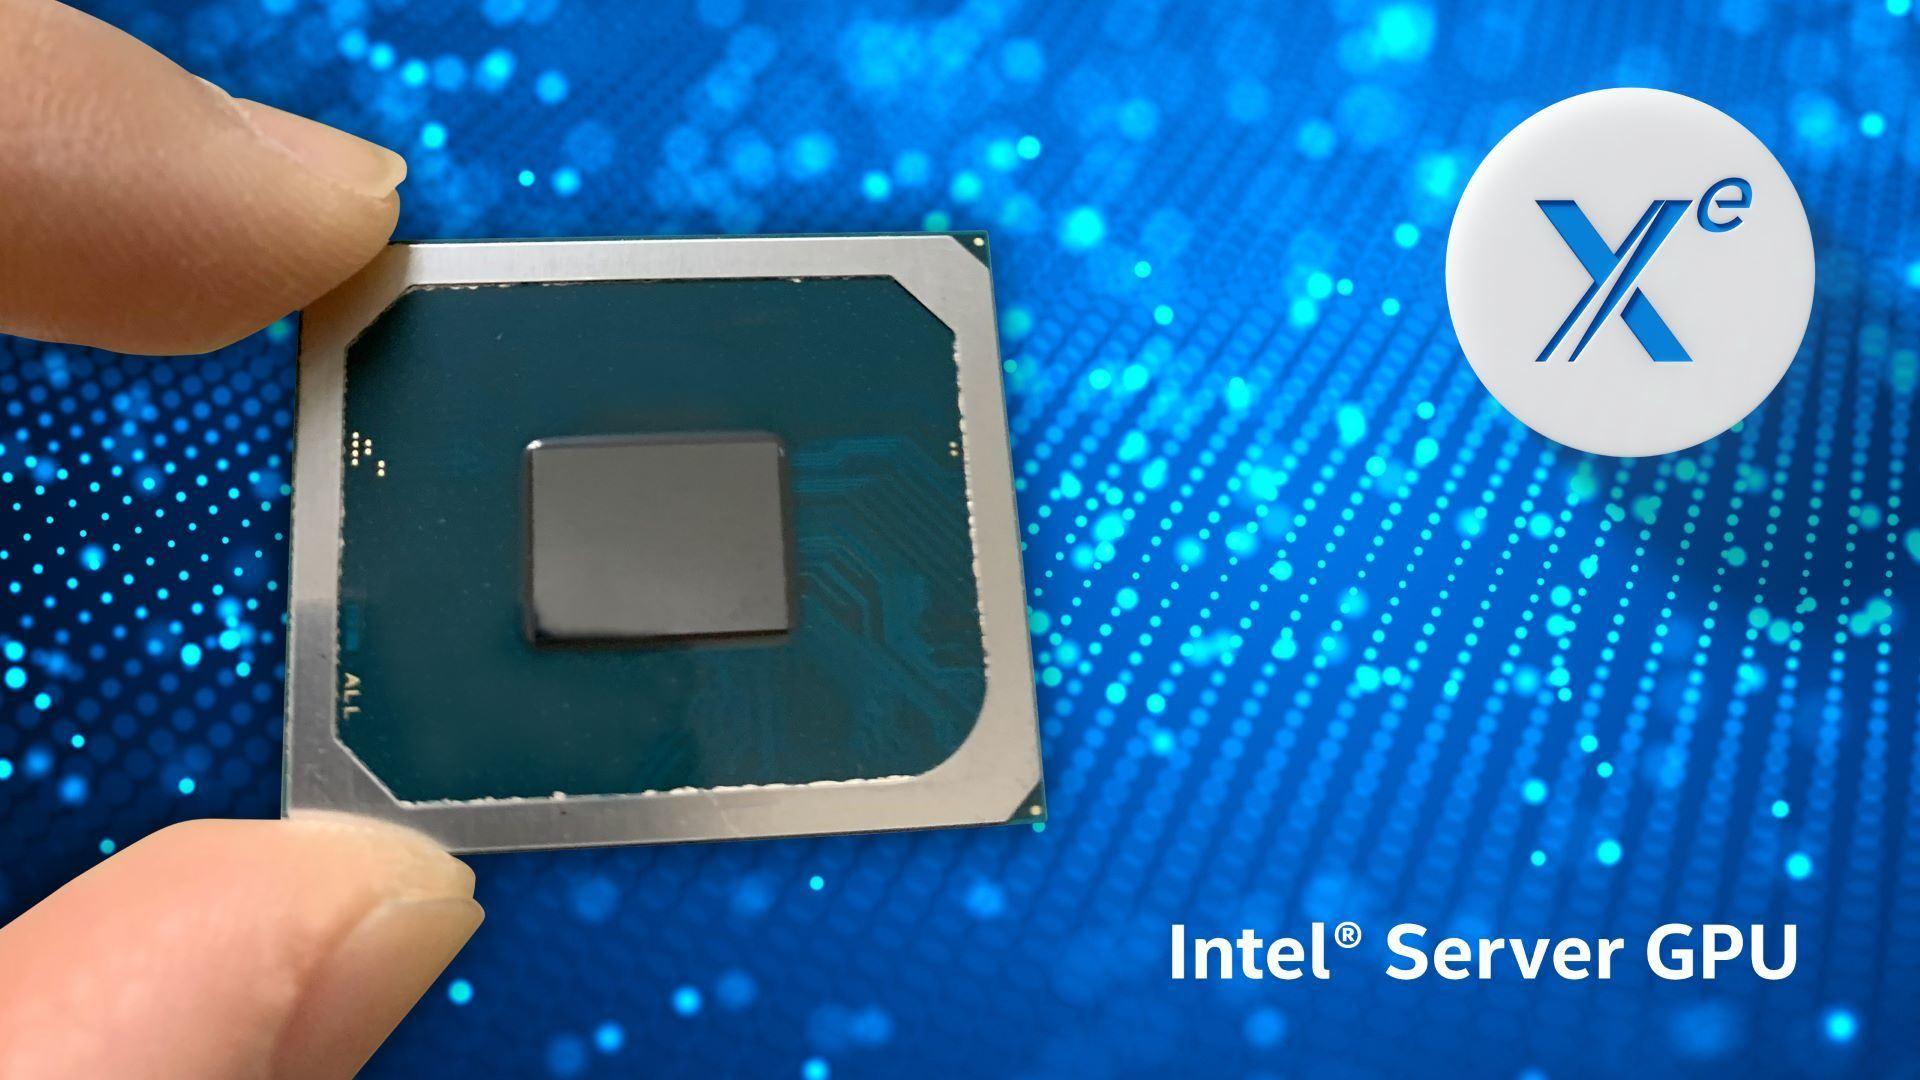 Product image of the Intel Server GPU held between two fingers